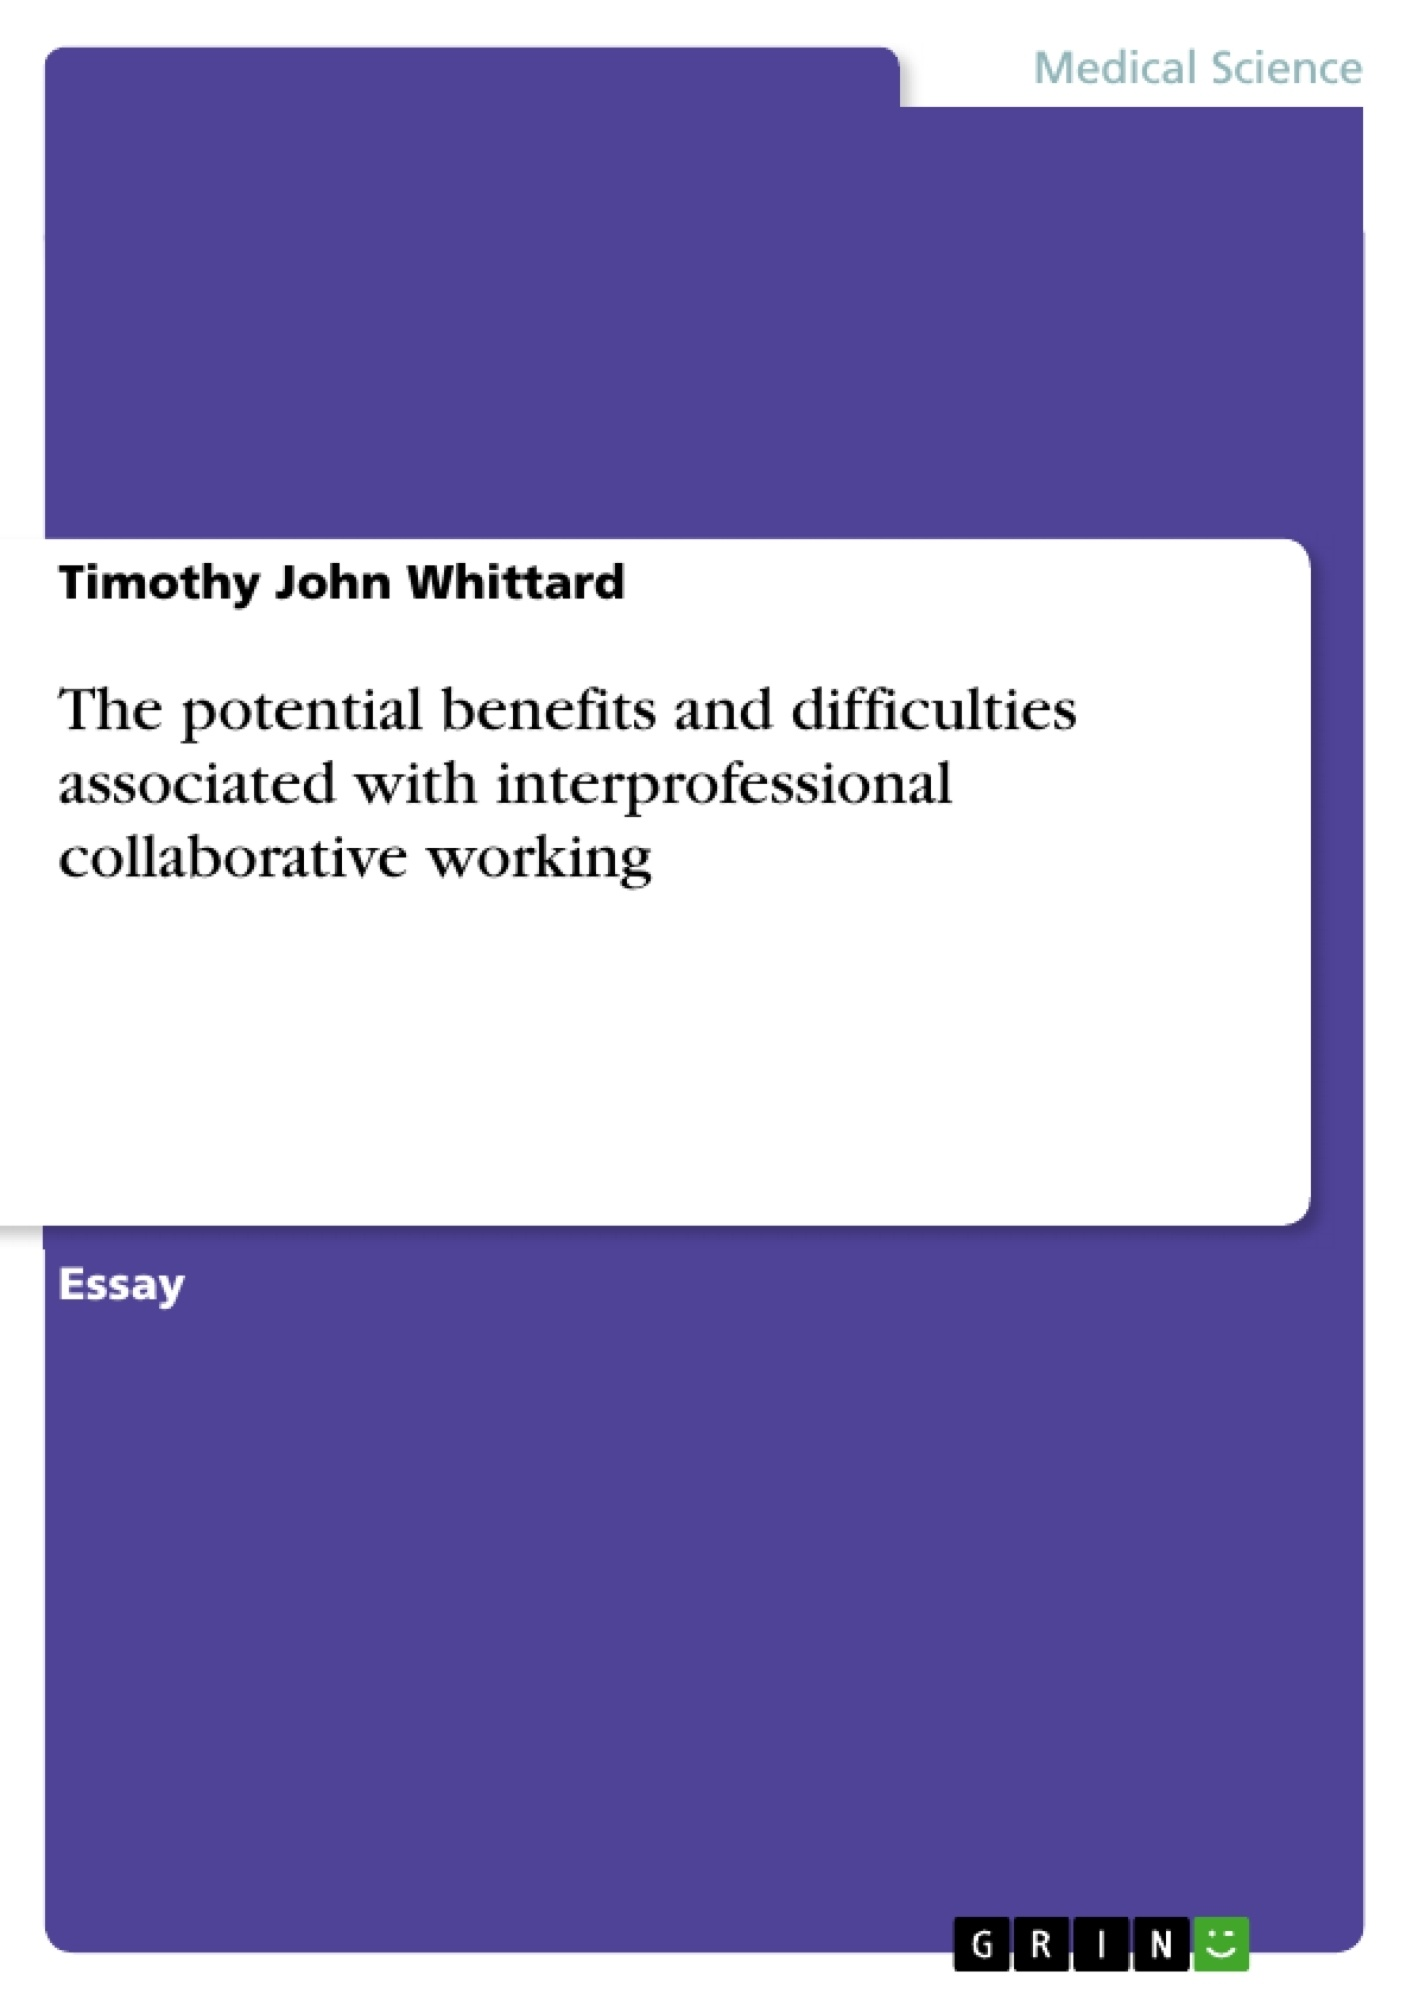 Title: The potential benefits and difficulties associated with interprofessional collaborative working